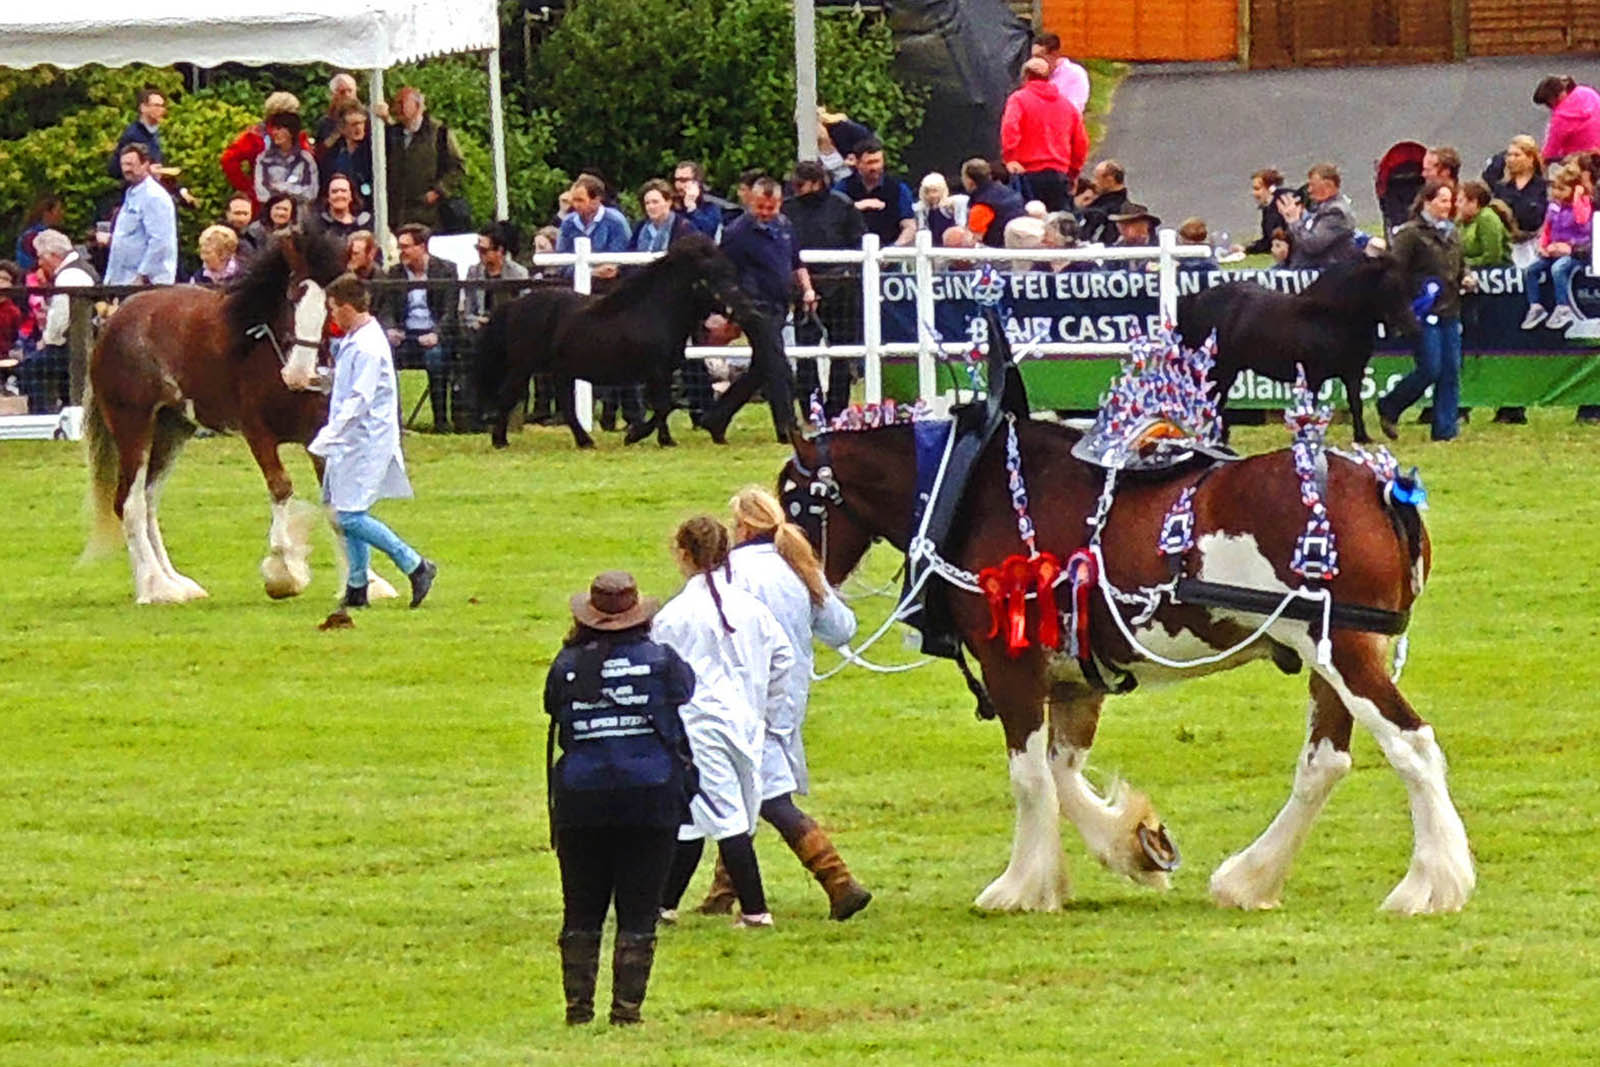 Soak up all things Scottish at the Royal Highland Show. Contact Drumscot for more information